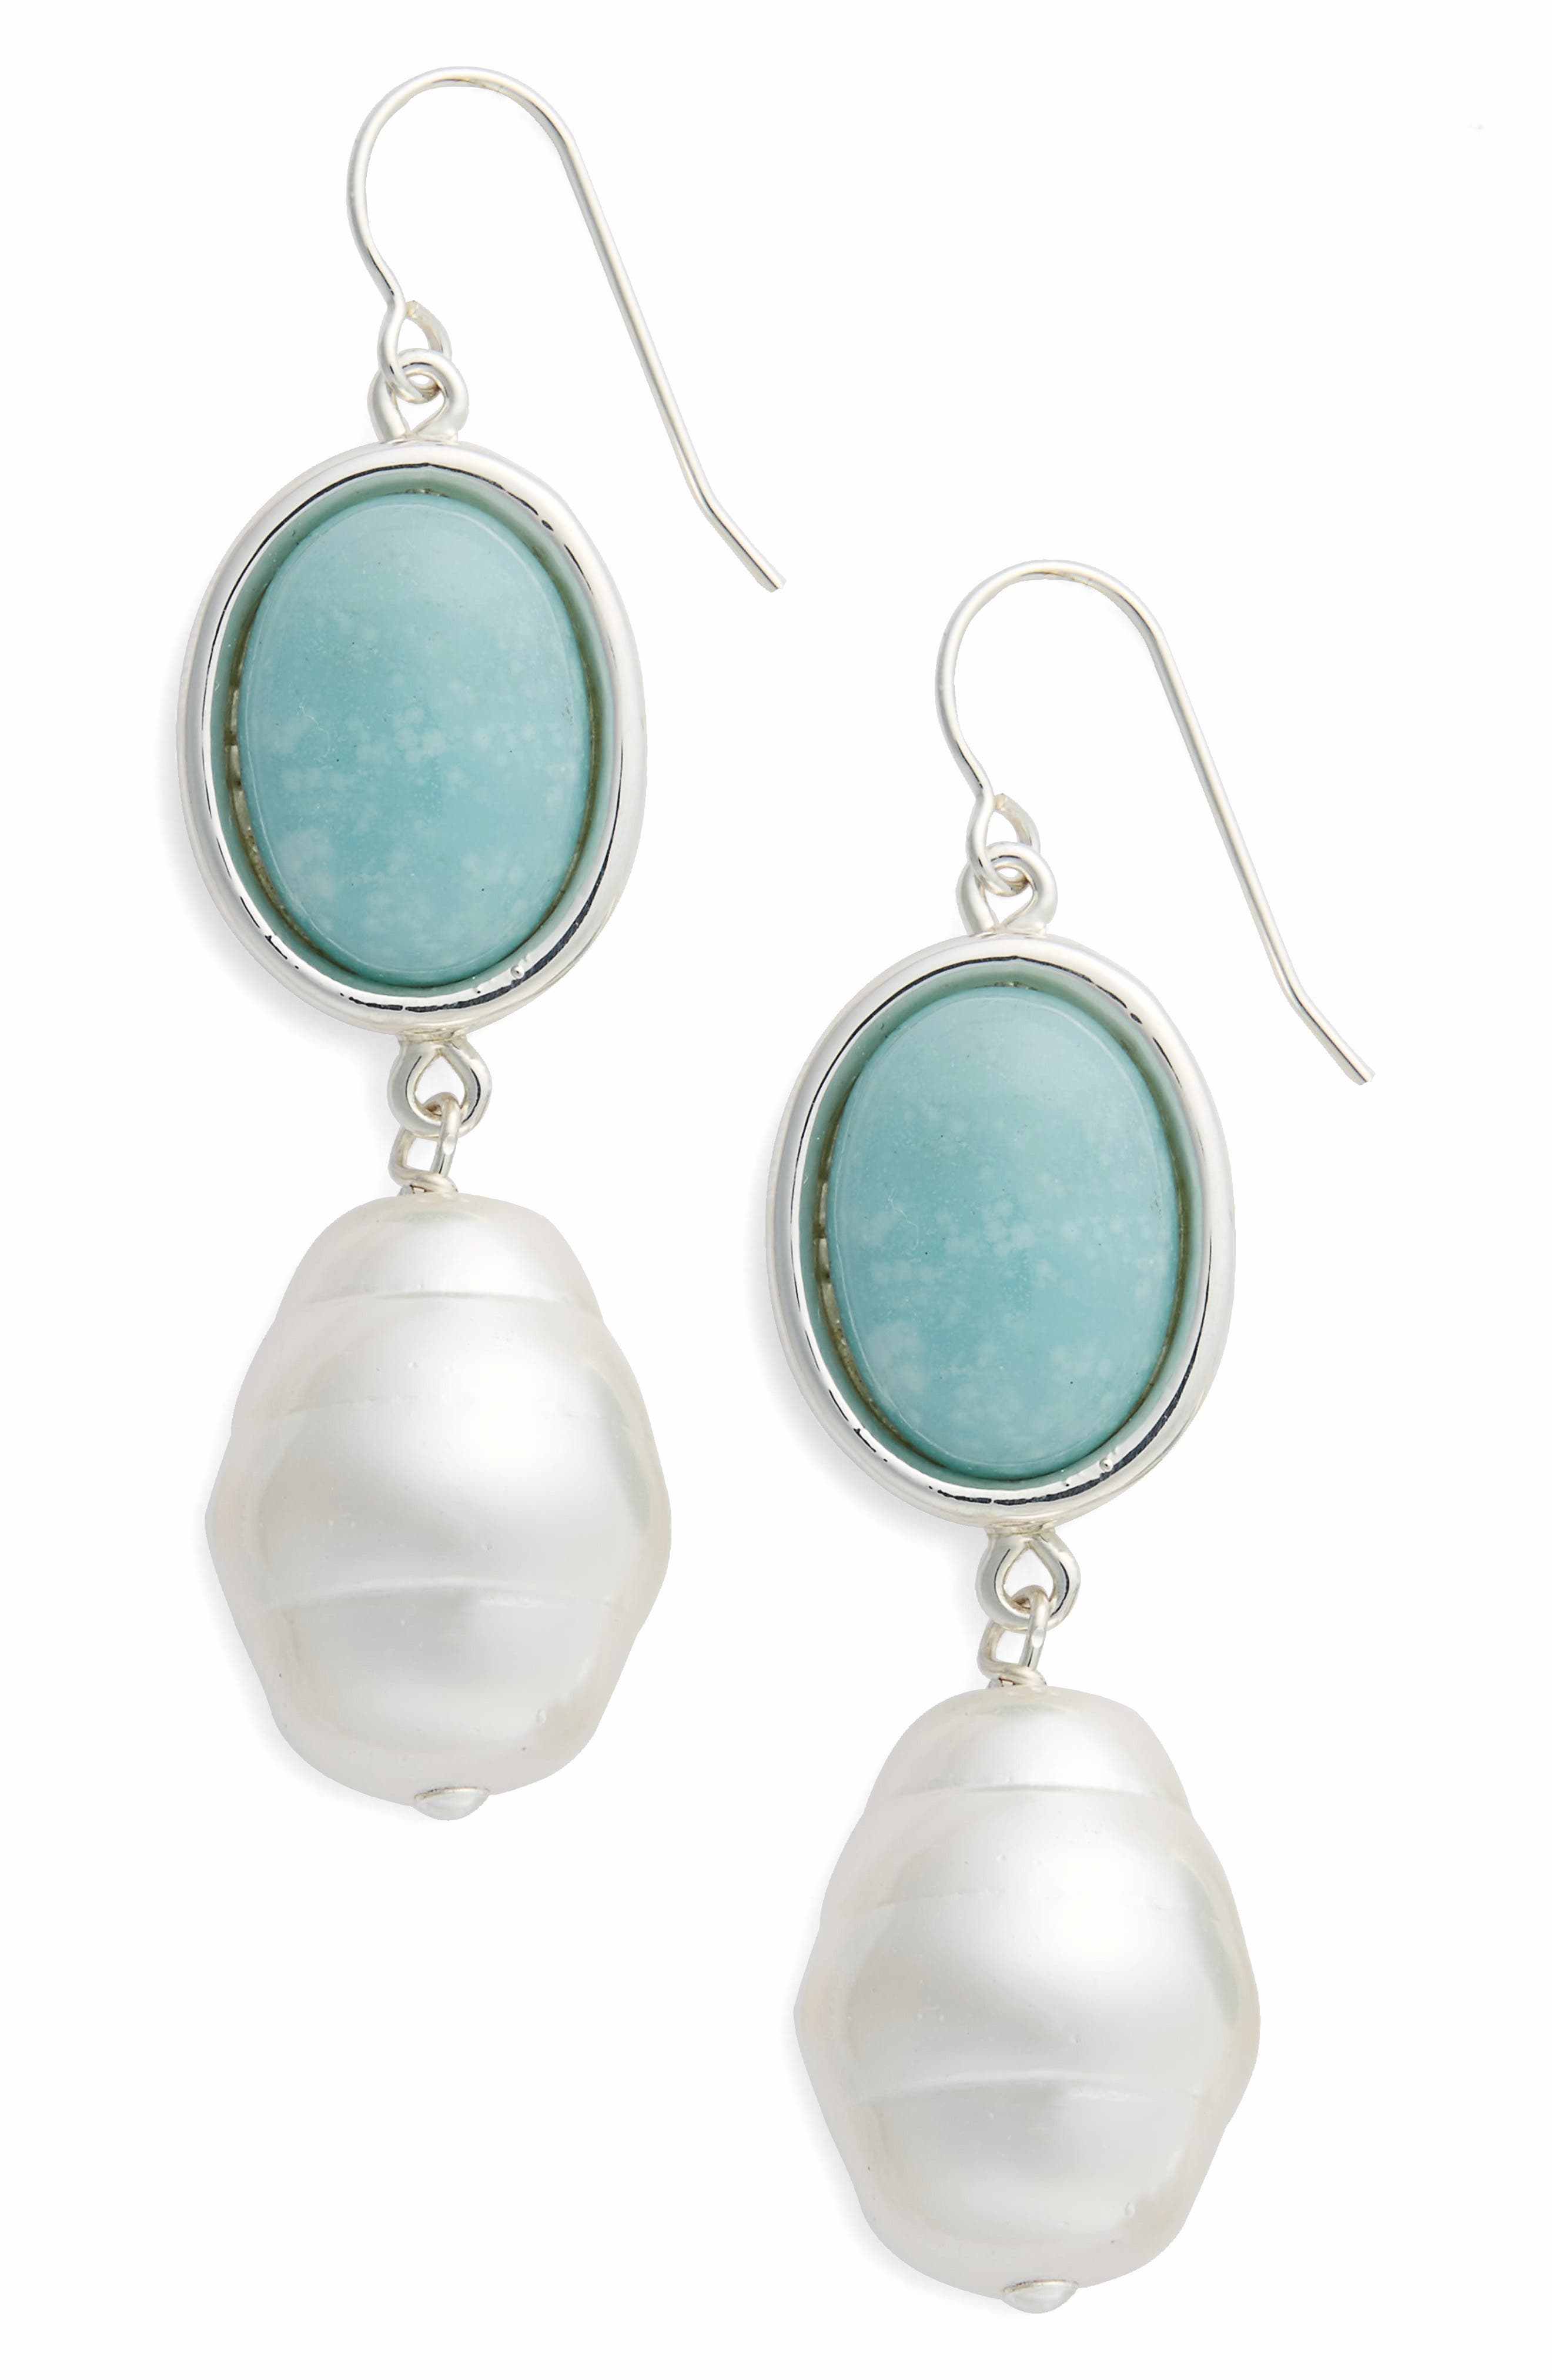 Simon Sebbag Semiprecious Stone & Imitation Pearl Drop Earrings